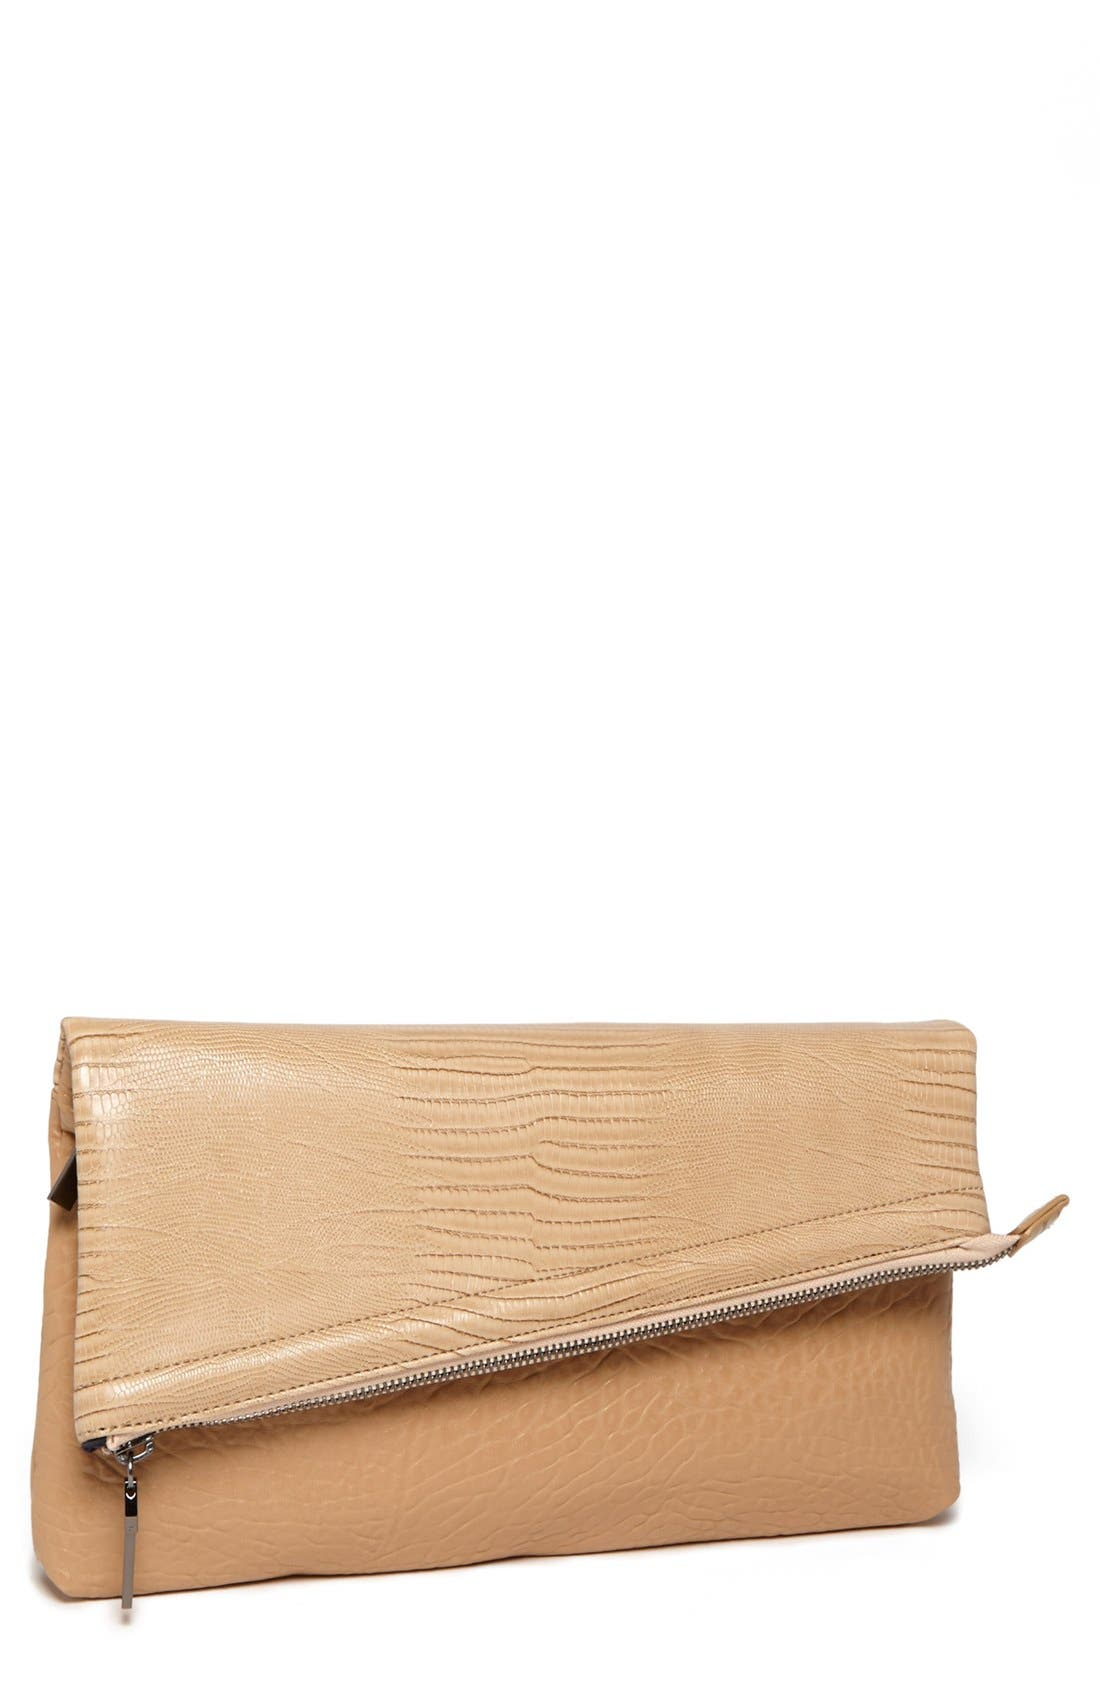 Main Image - French Connection 'Zip Code' Clutch